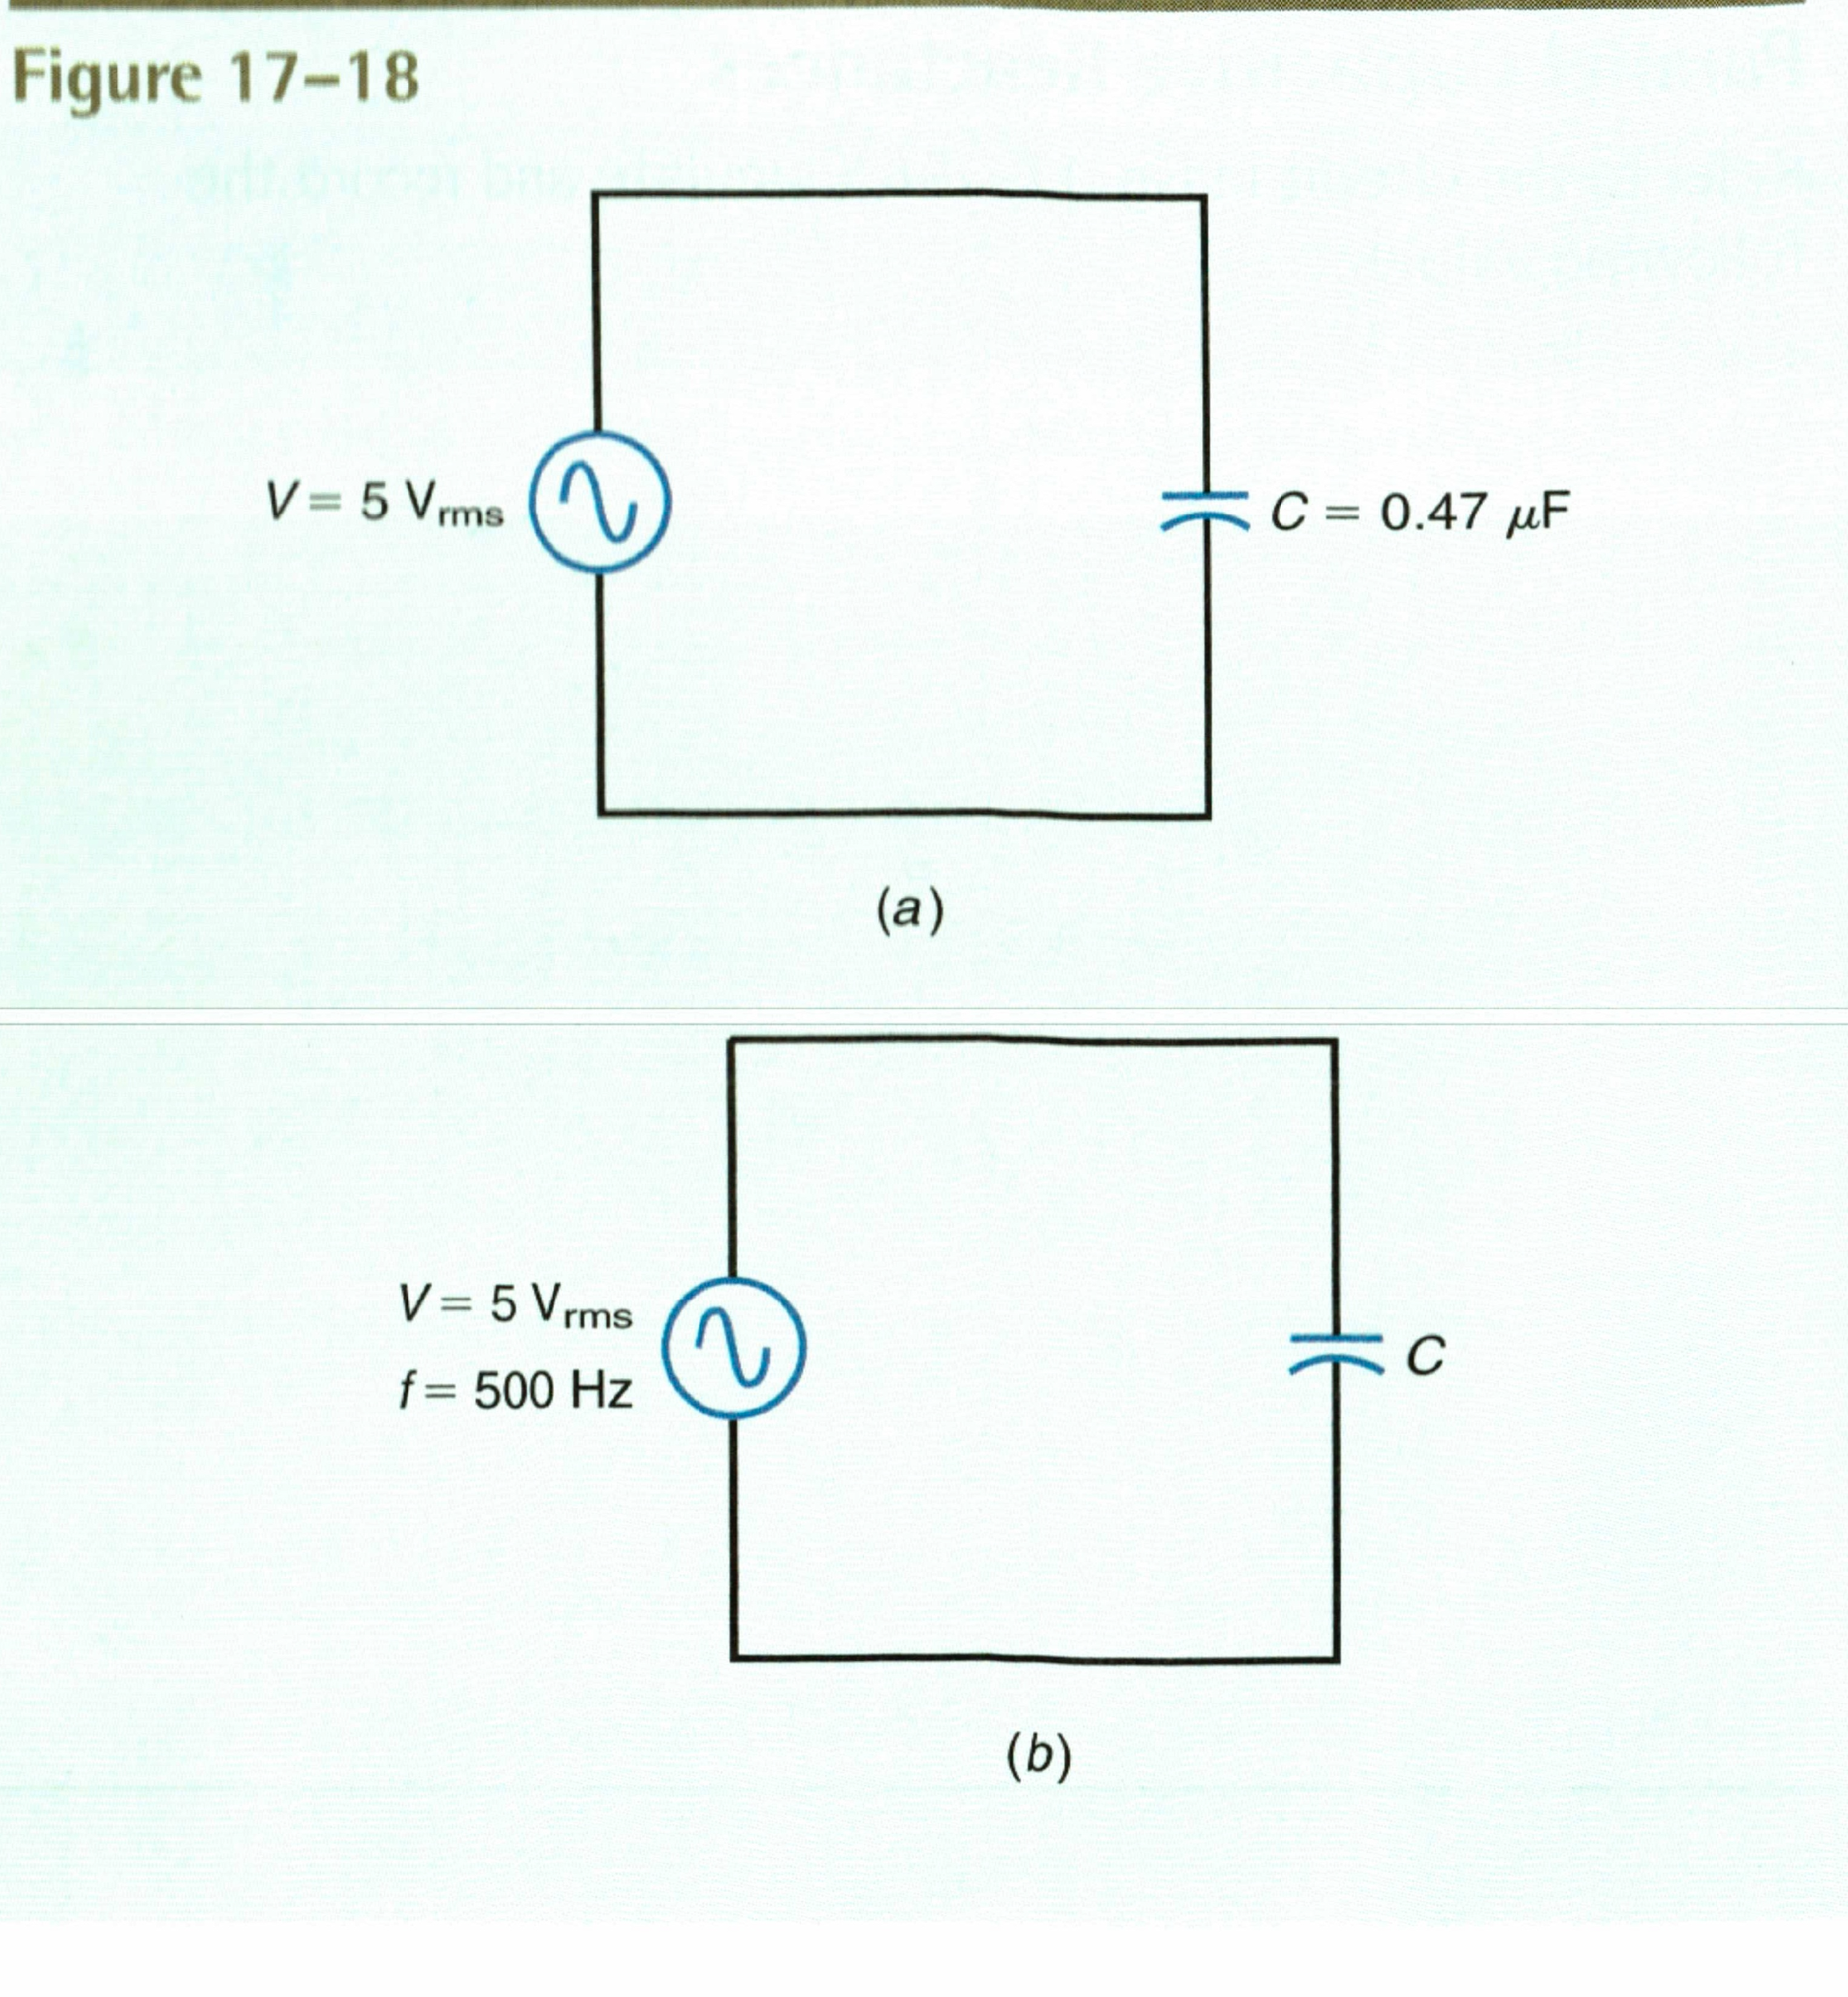 Calculate and record the value Xc in Fig. 17-18a f